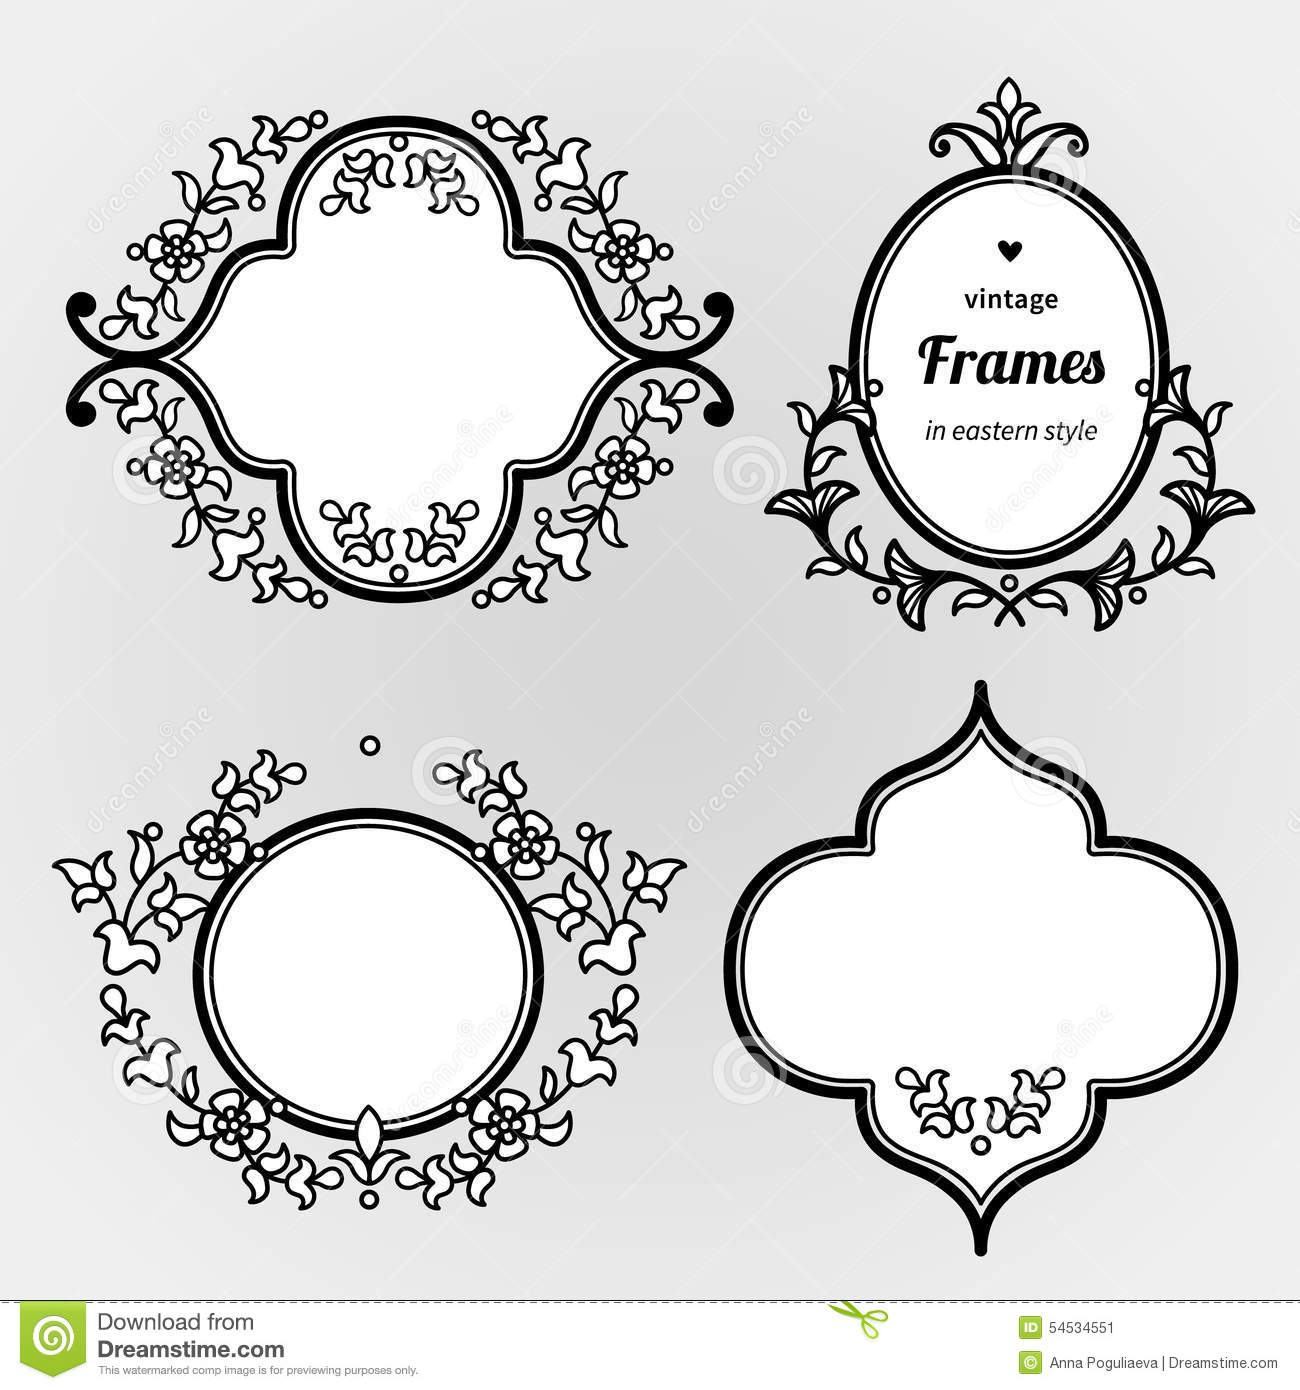 Line Art Text : Filigree line art frames in eastern style stock